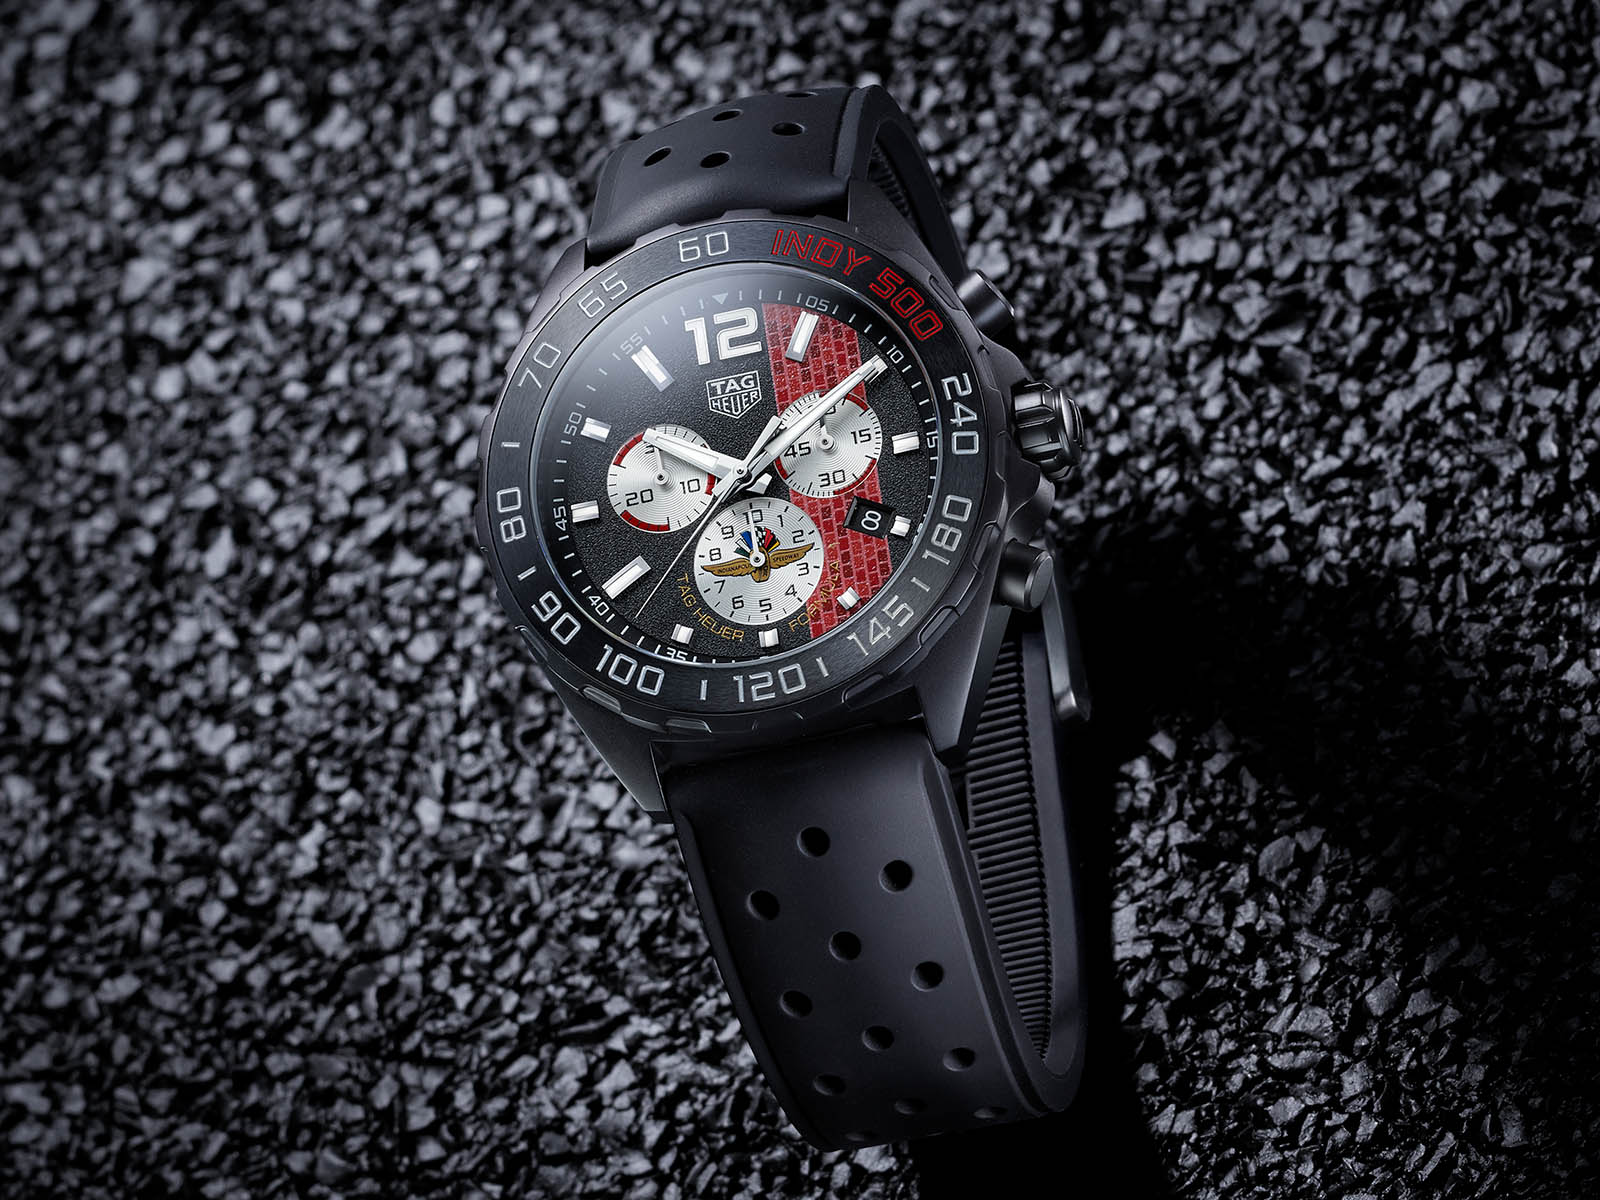 caz101ad-ft8024-tag-heuer-formula-1-indy-500-2020-special-edition-3.jpg